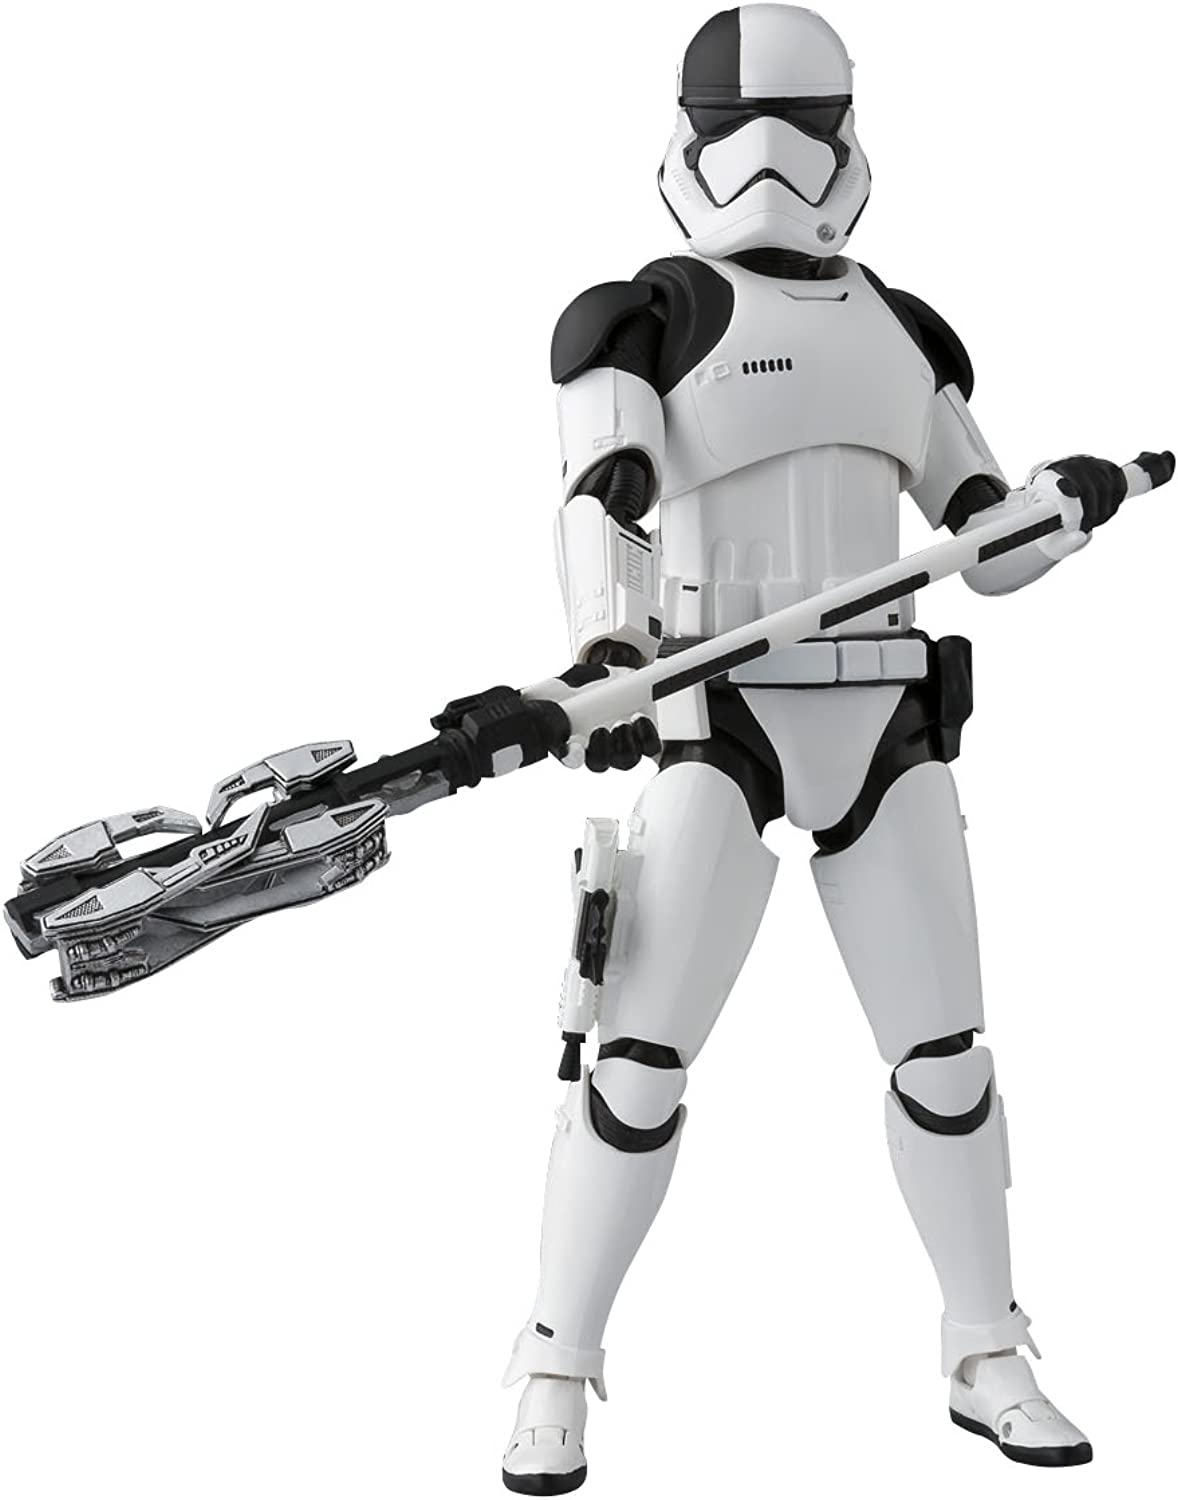 S. H. Figuarts Star Wars (STAR WARS) First order executor (THE LAST JEDI) Approximately 150 mm ABS & PVC painted movable figure